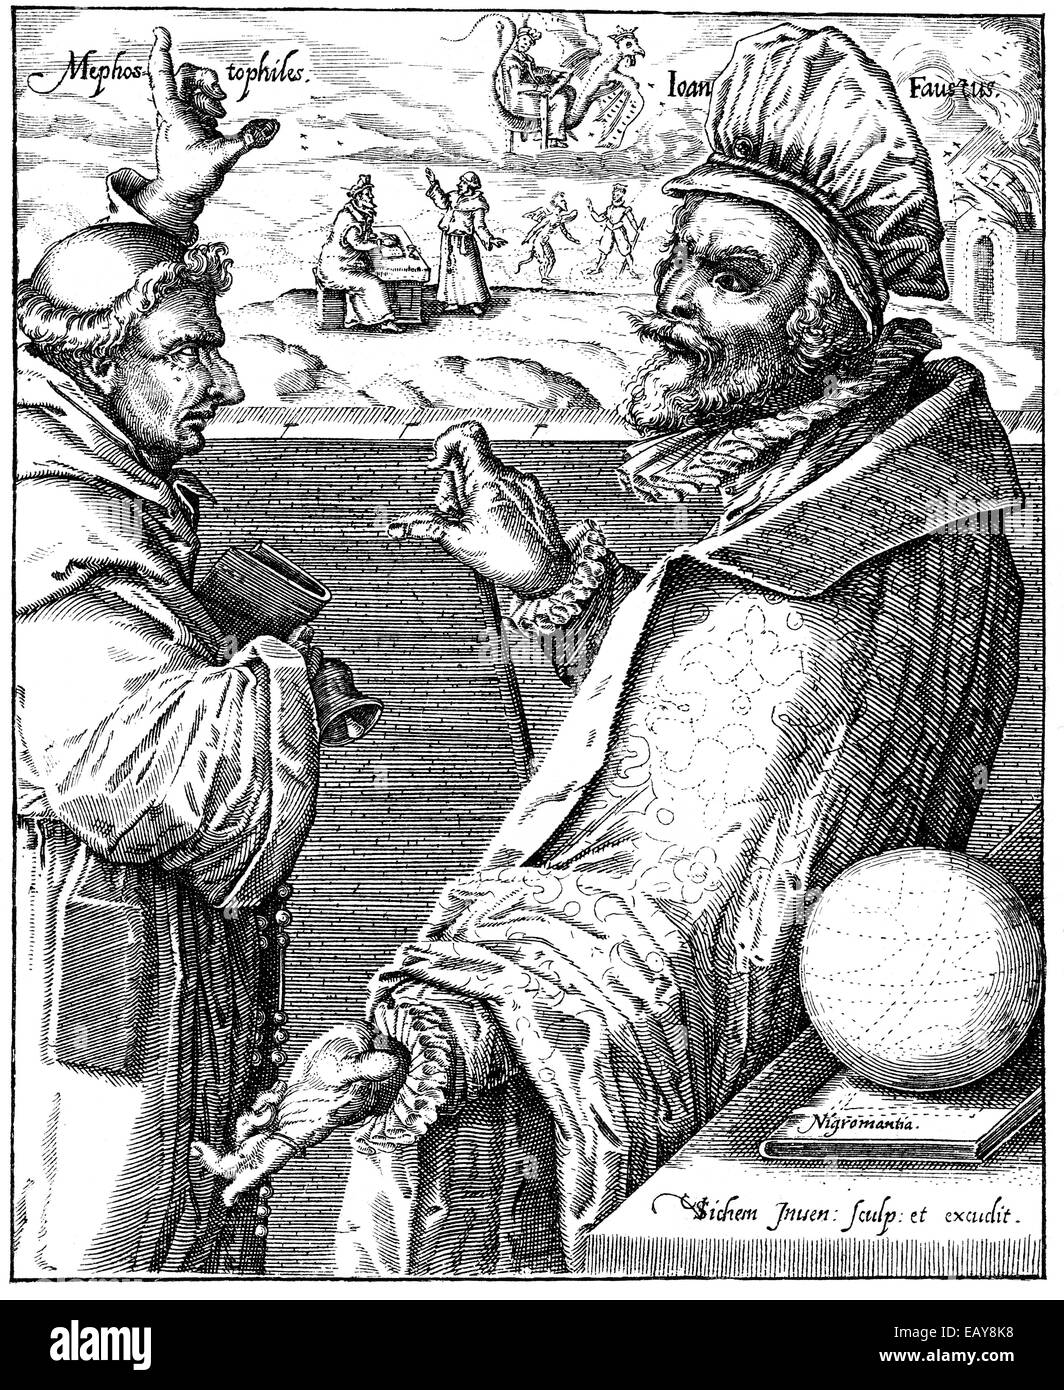 the Faustian pact between Mephistopheles or Mephisto and Heinrich Faust, 16th century, der Teufelspakt zwischen - Stock Image